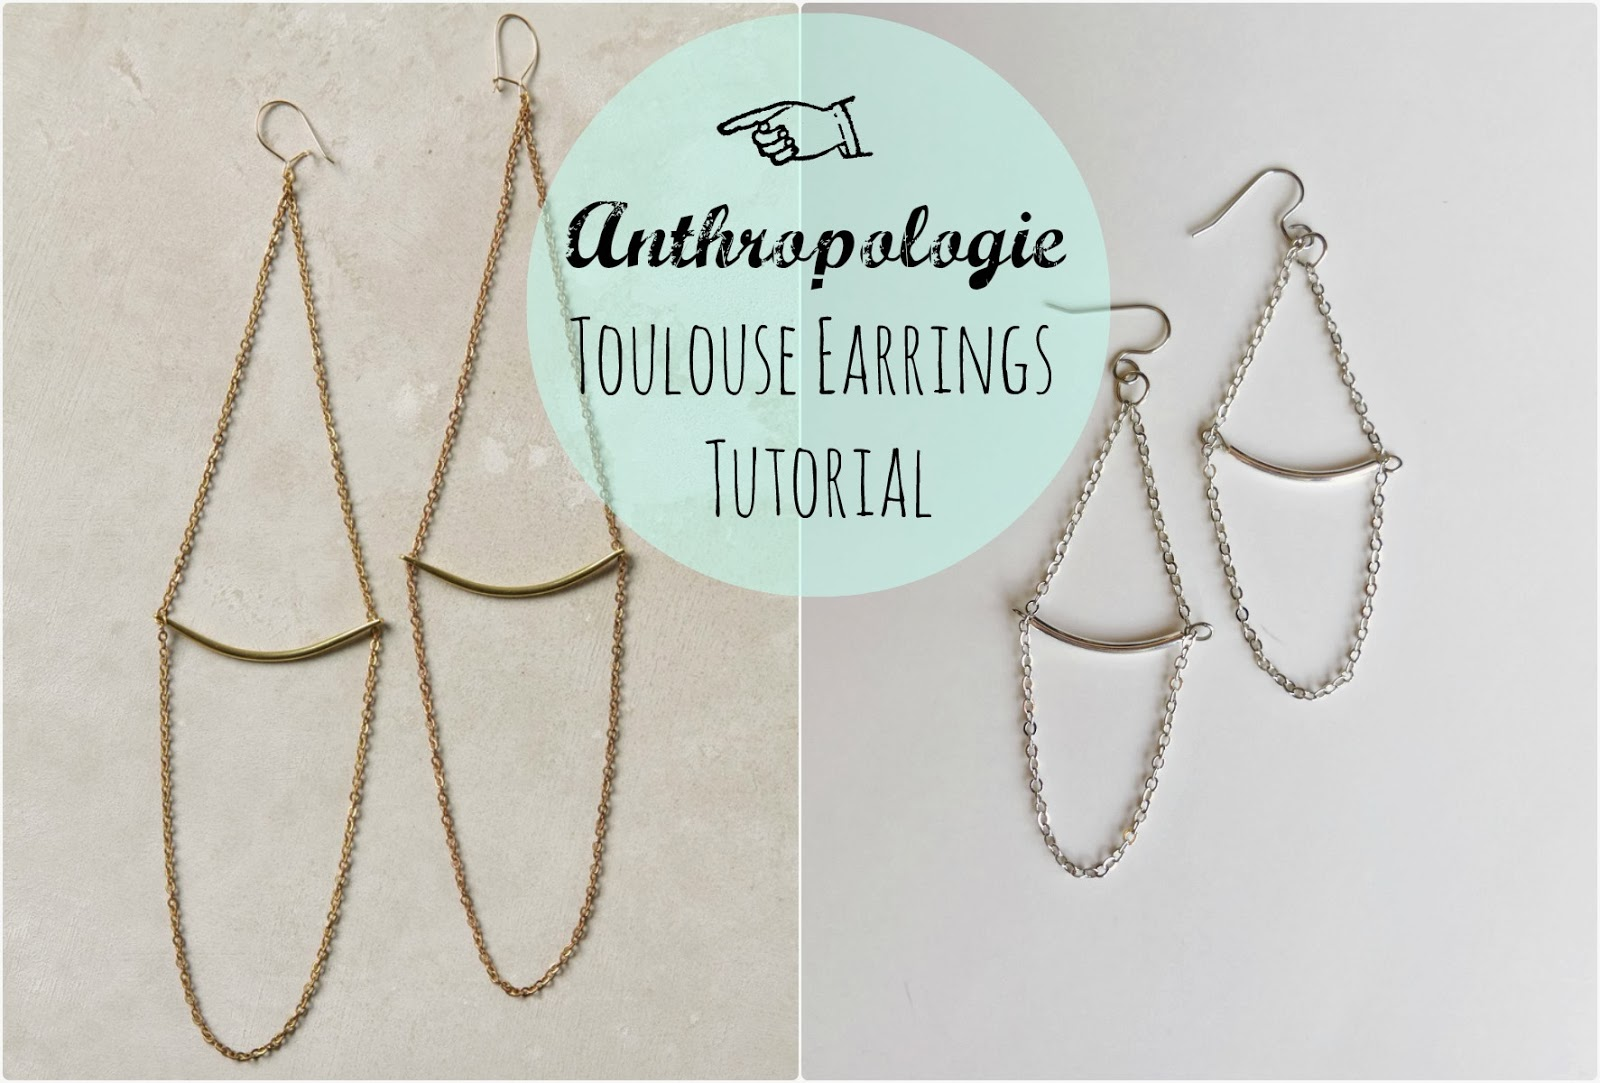 http://www.domesticblisssquared.com/2013/08/diy-anthropologie-toulouse-earrings.html